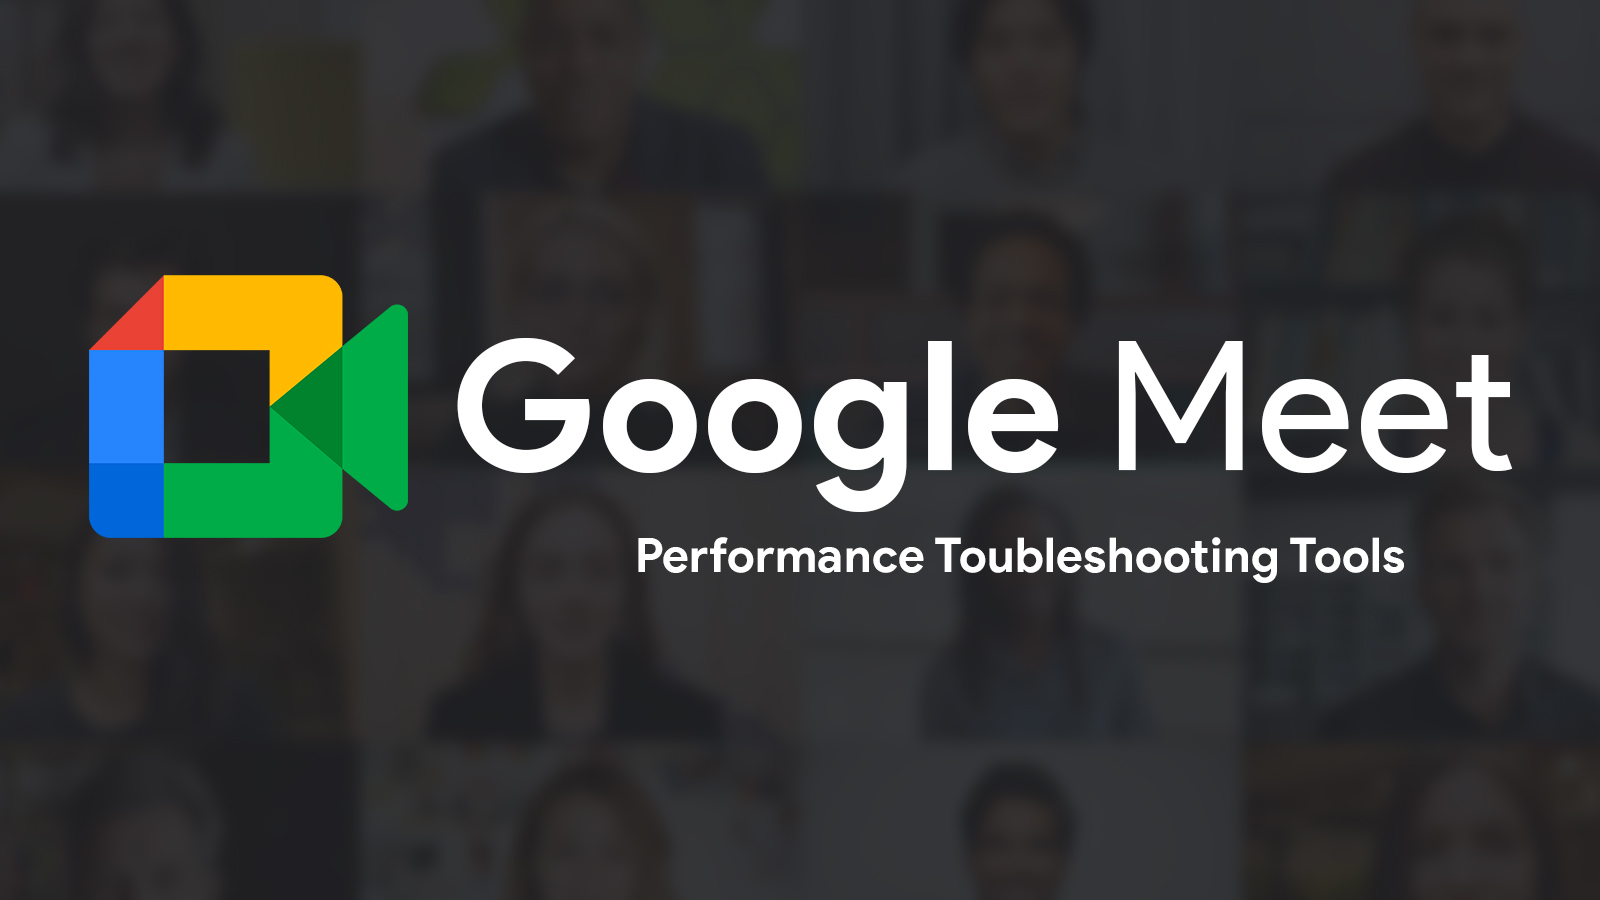 Google Meet receives new tools to troubleshoot network and performance issues